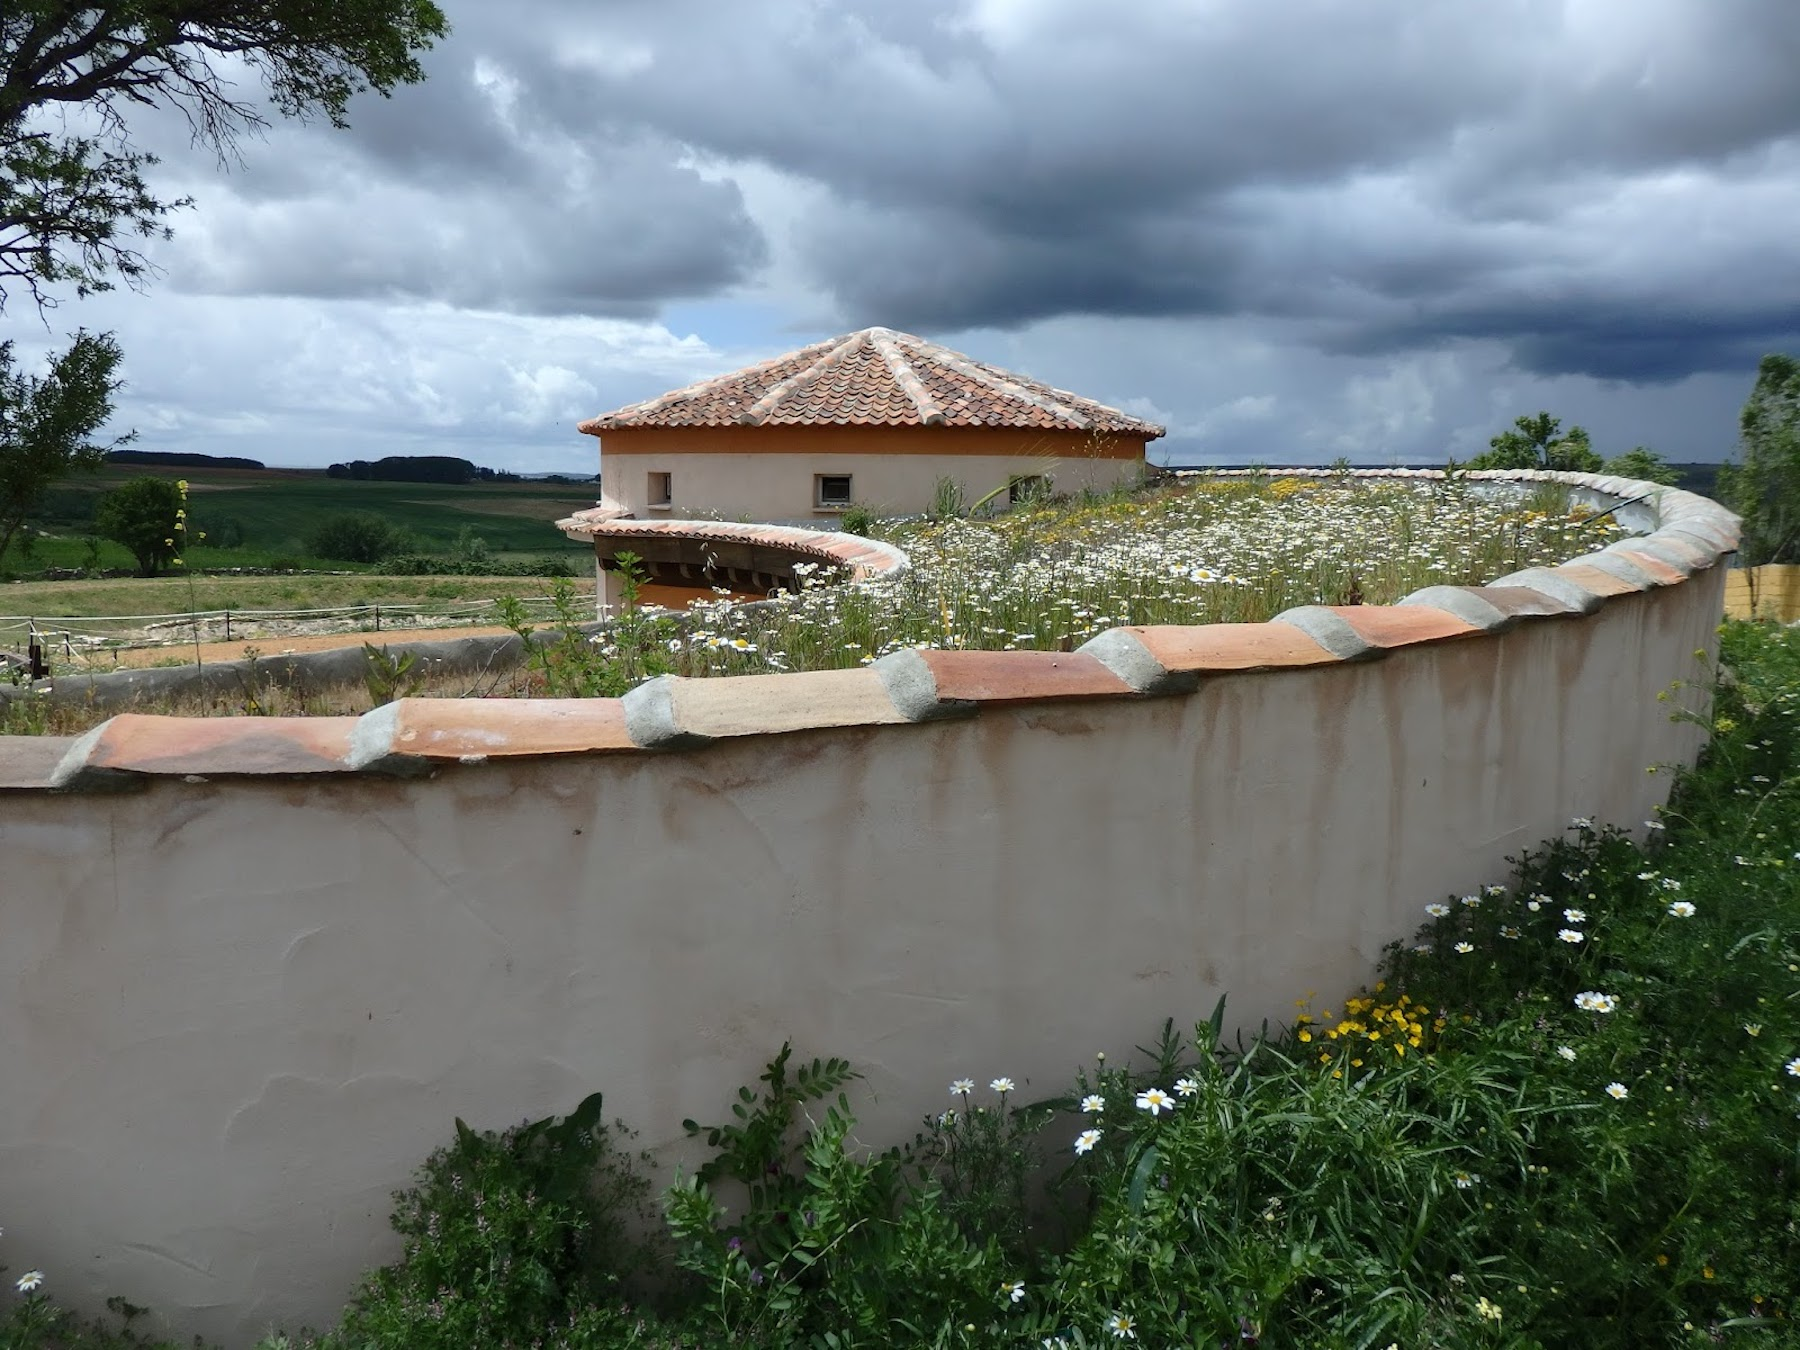 Vellosillo is a good example of rural architecture that motivates abandoned areas.